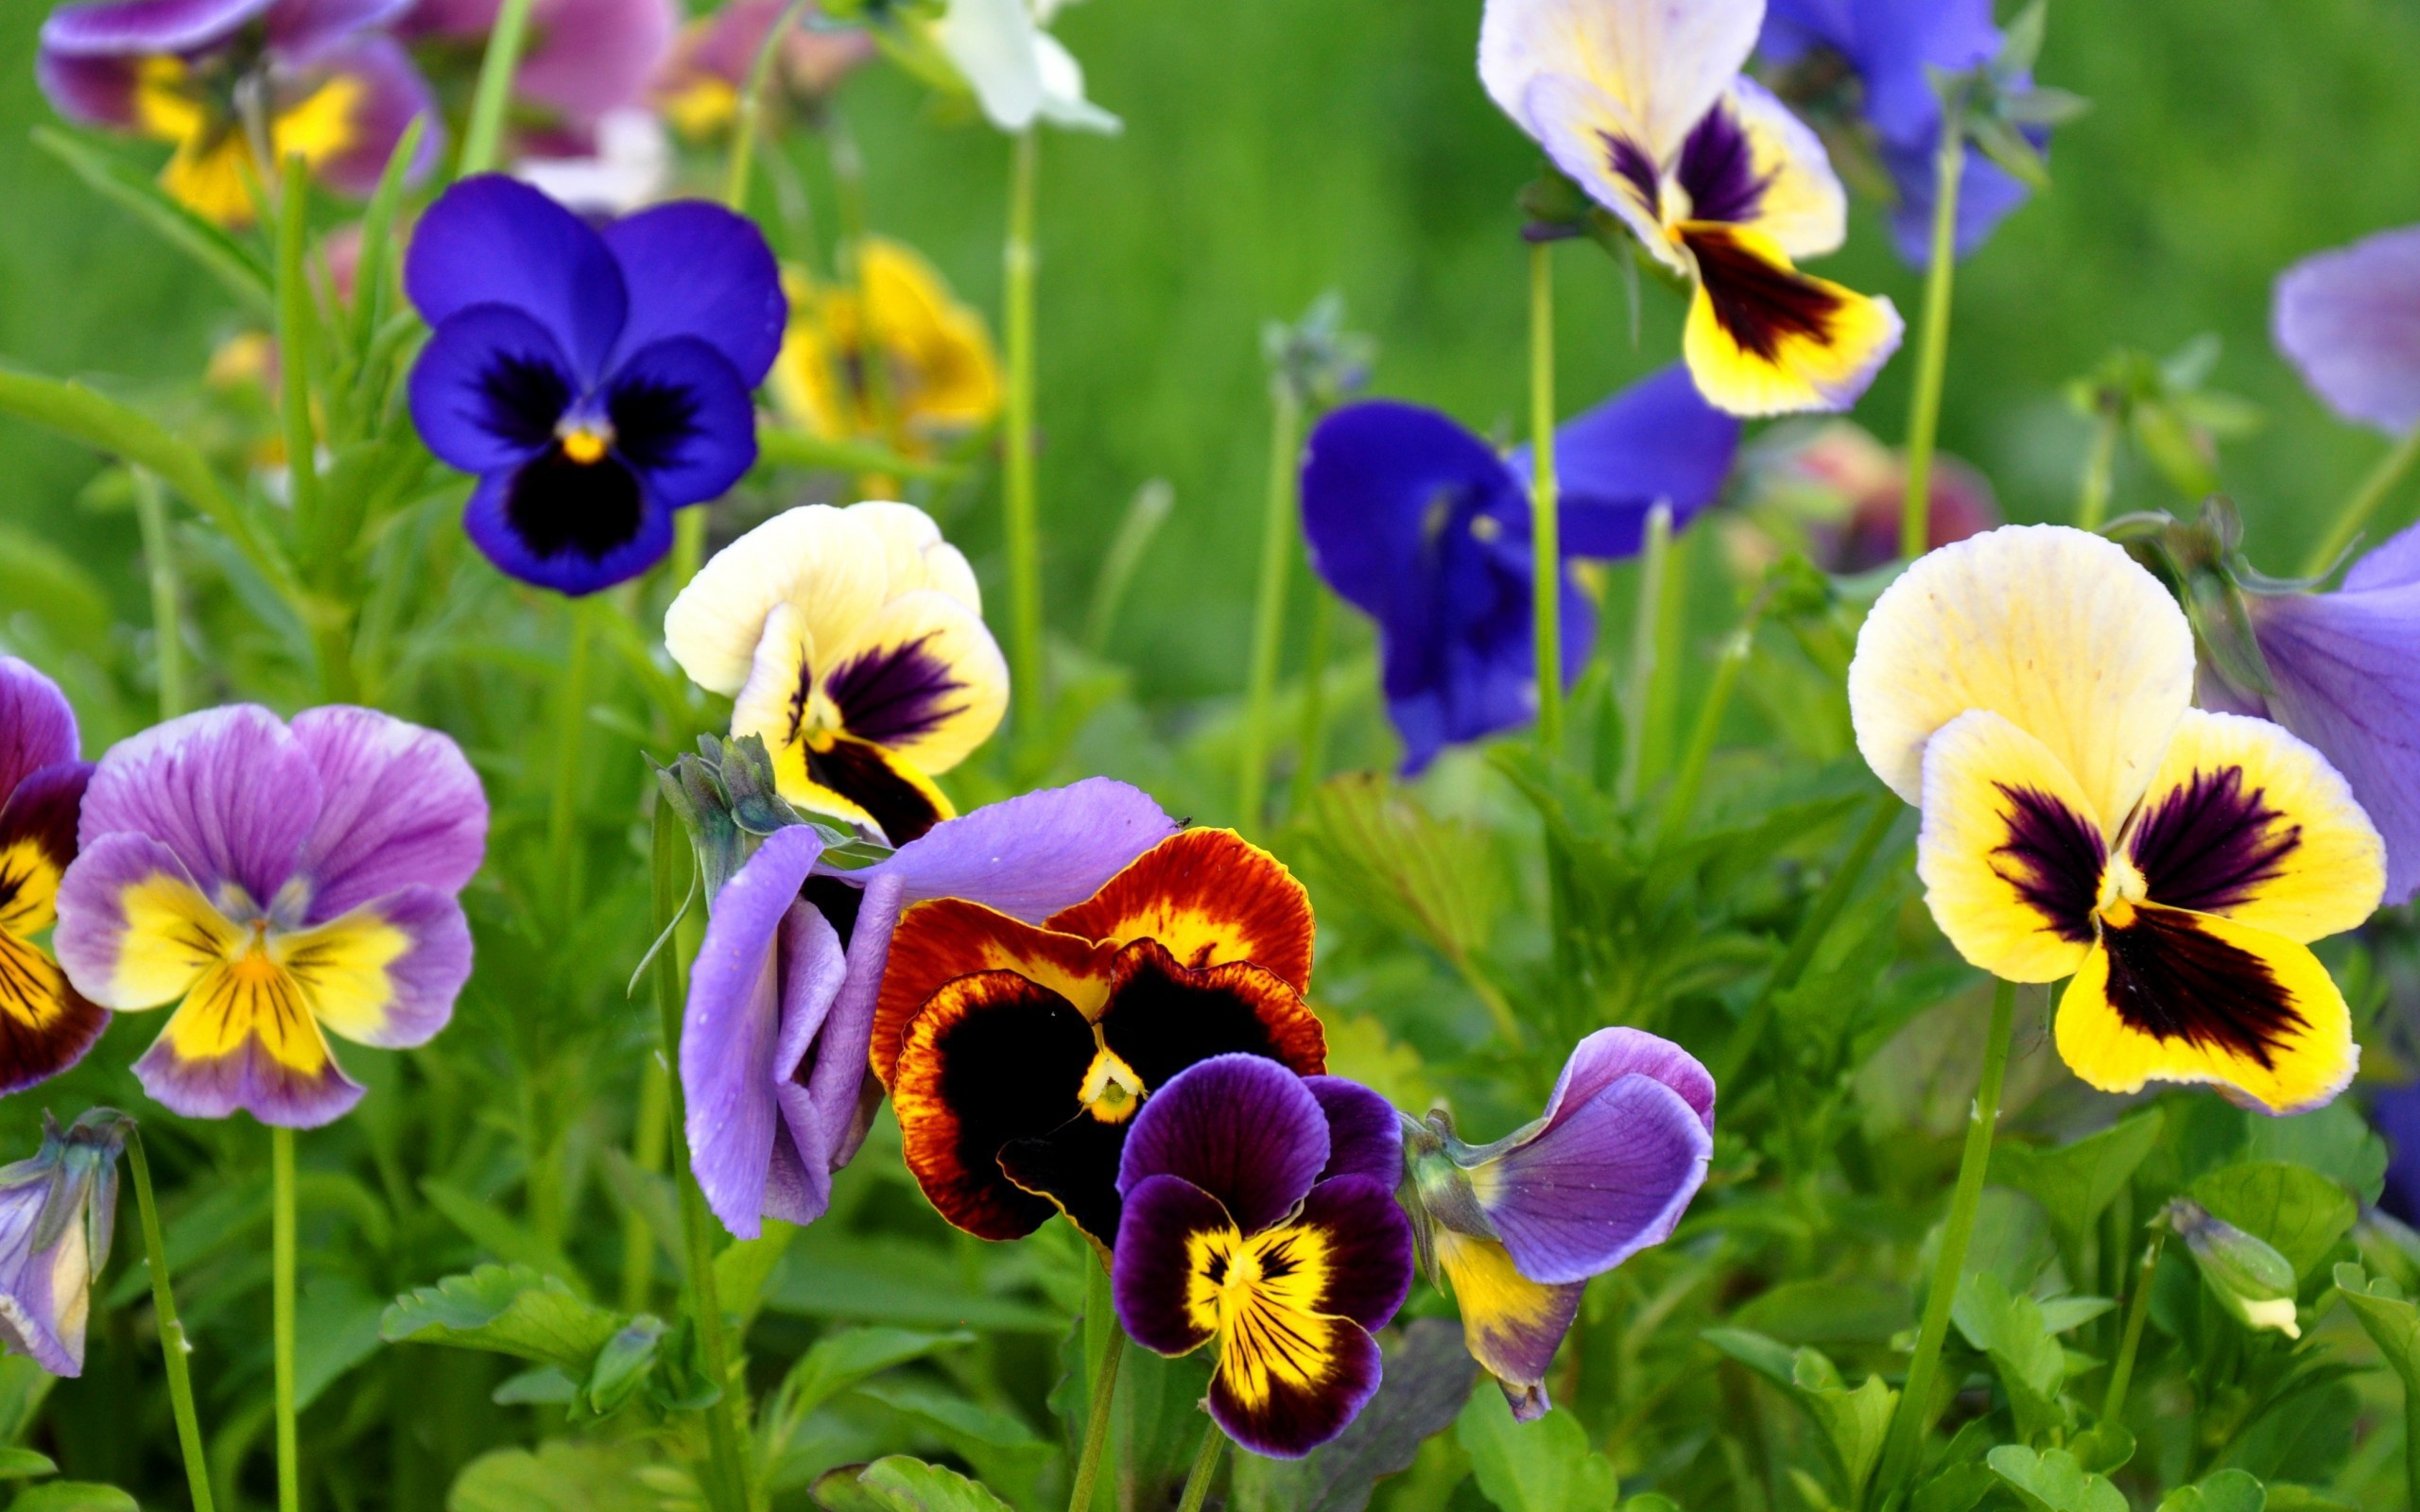 pansy flowers nature wallpaper 50003